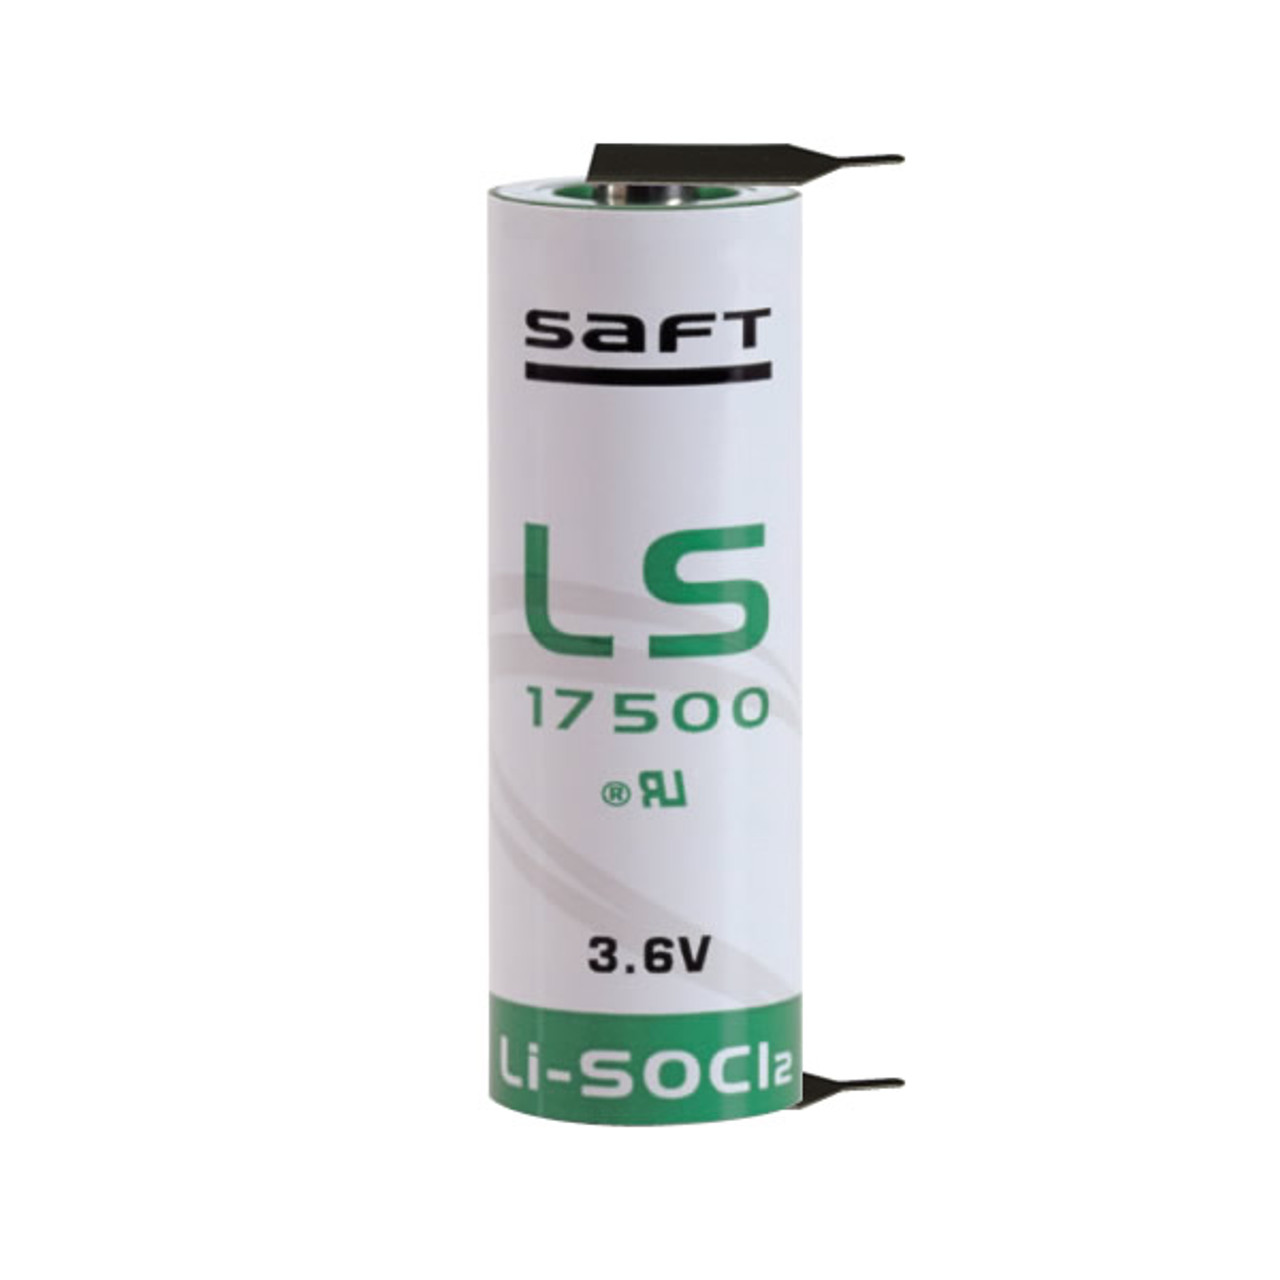 Saft Ls17500 2 Pf Battery 3 6v 3 60ah A Lithium 2 Pins 1 1